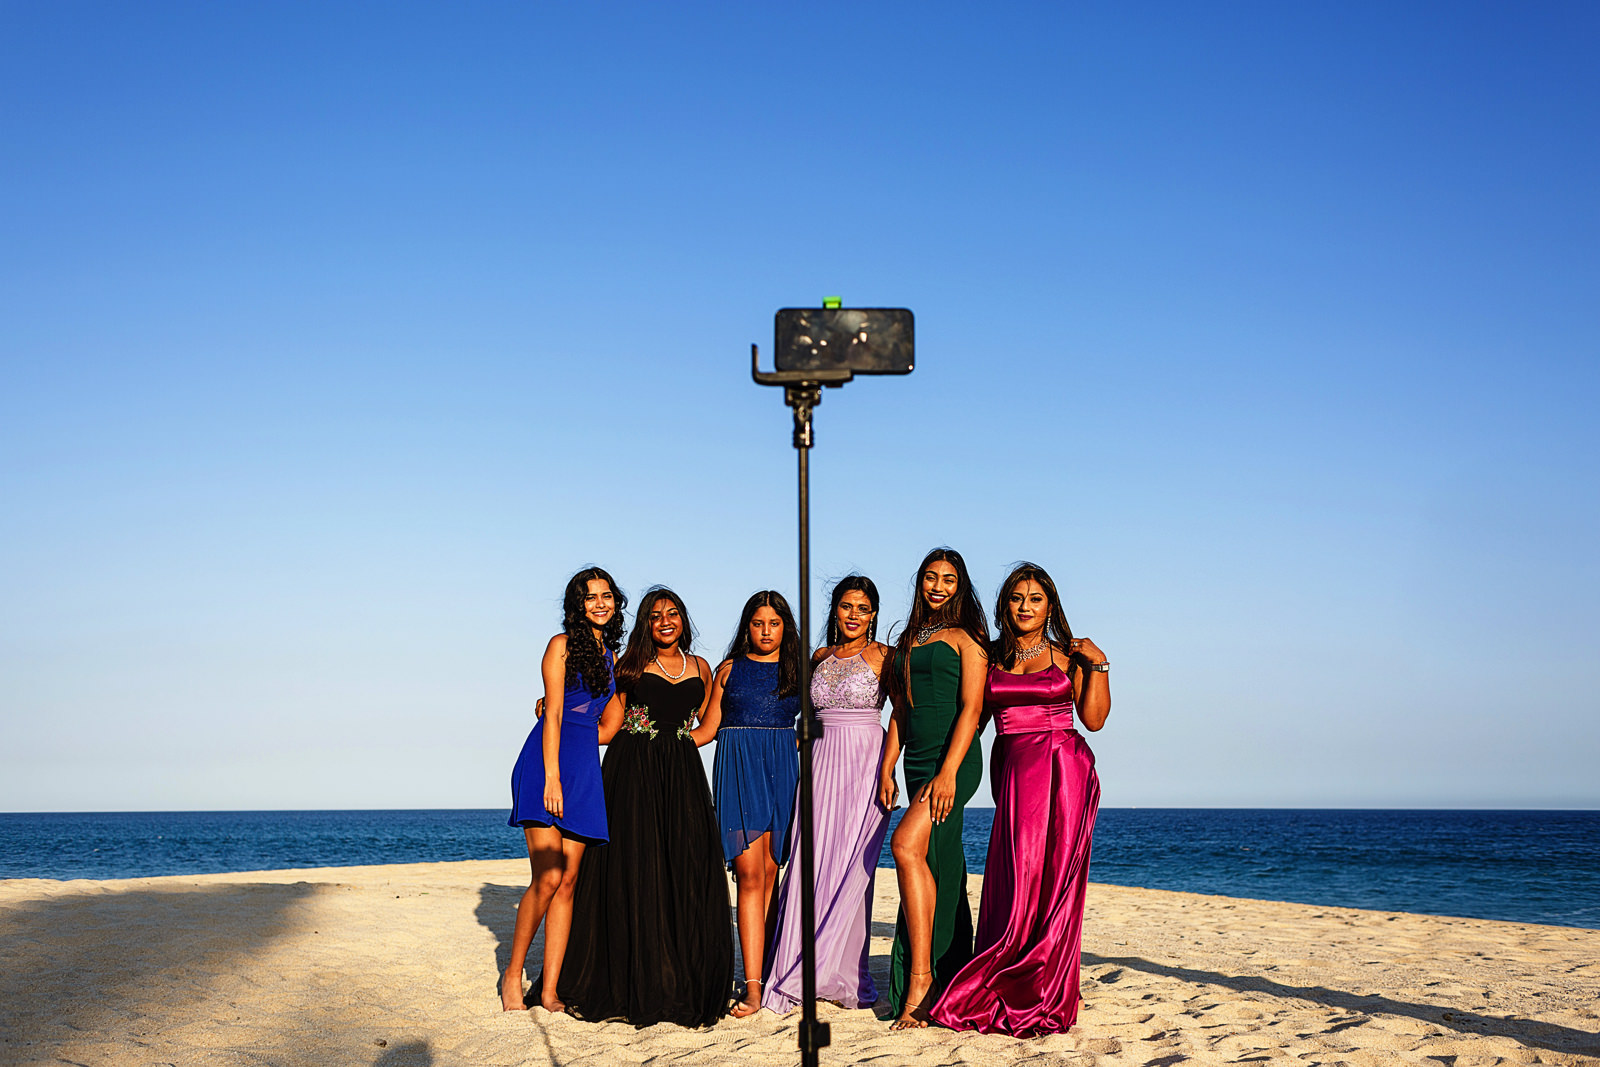 Group of ladies well dressed doing a selfie on the beach